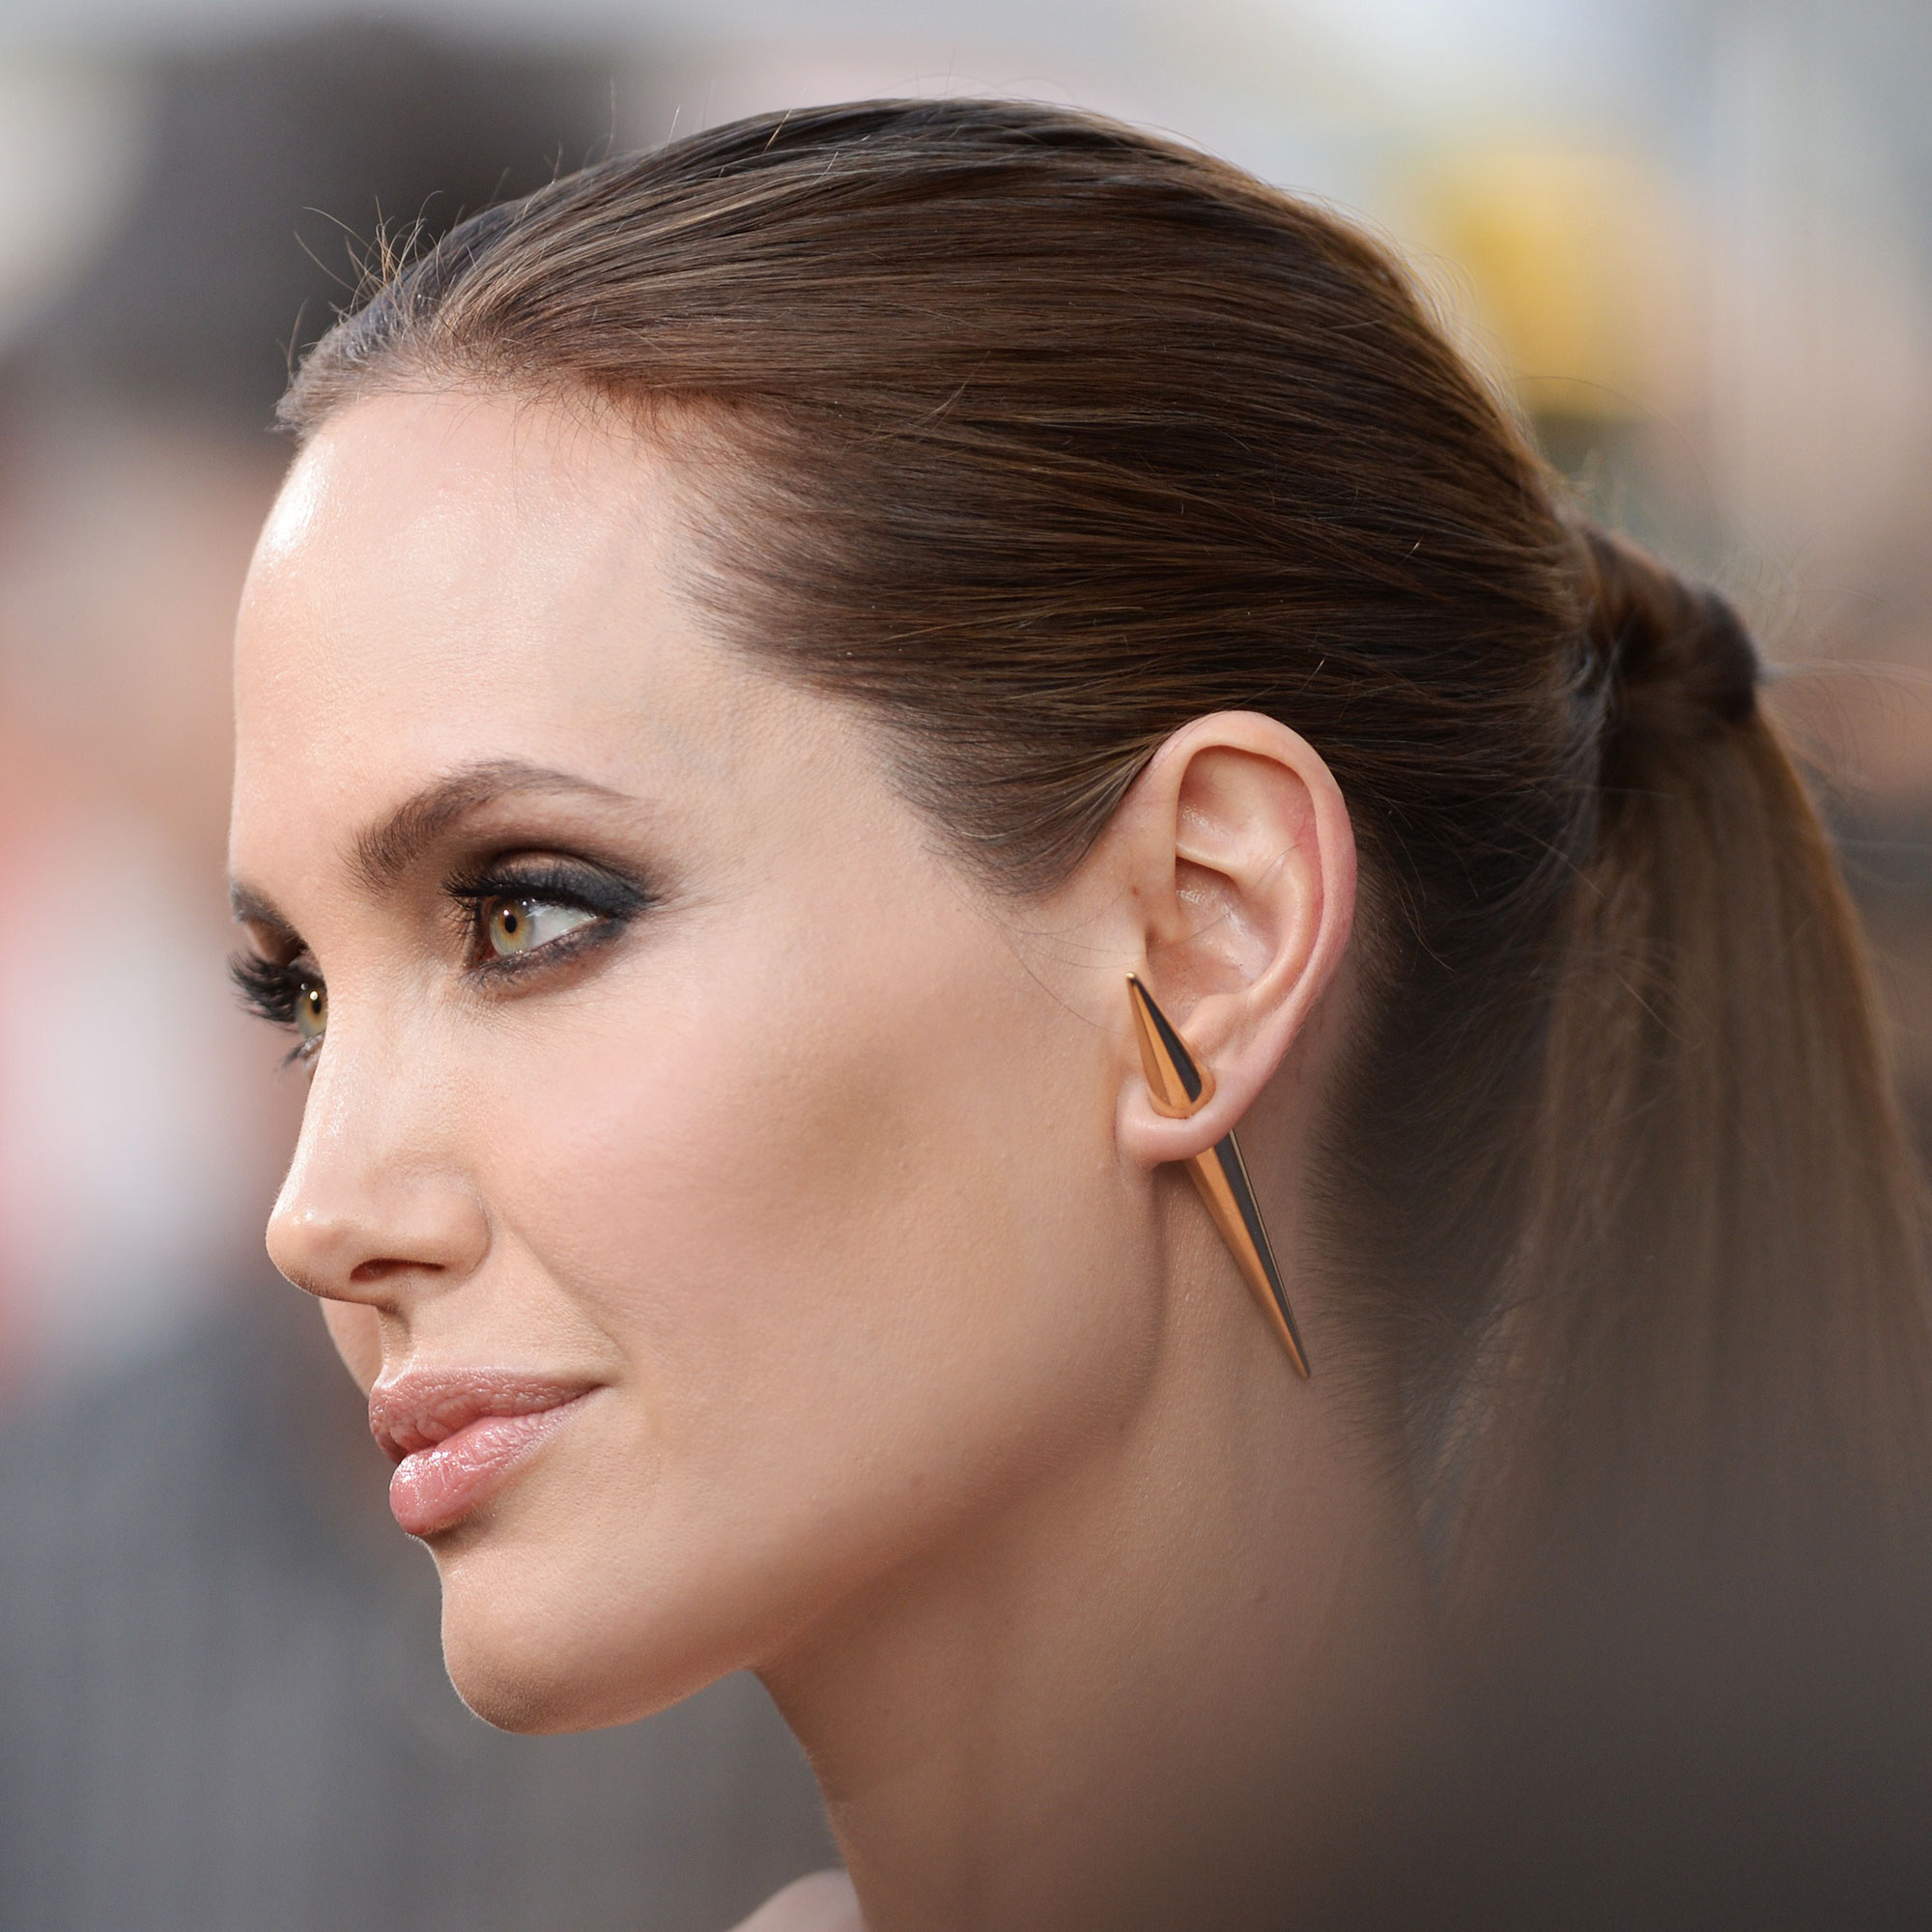 angelina_jolie_hd_image_wallpaper